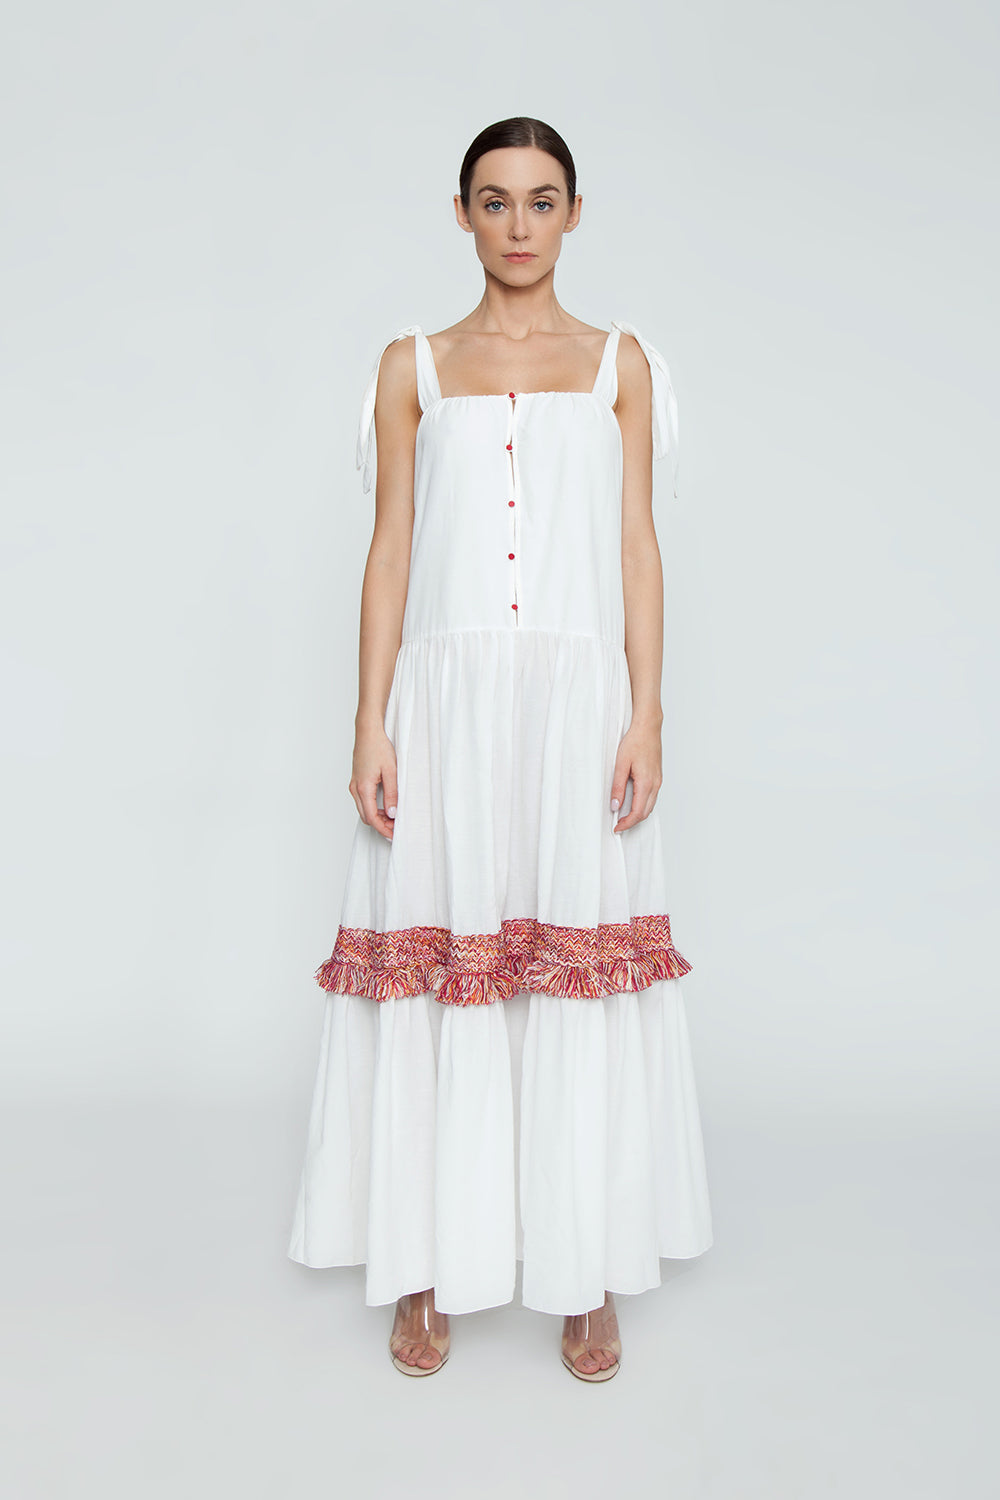 69adb8e912 ... CLUBE BOSSA Bolkan Shoulder Tie Long Dress - White & Jazzy Fringes Red  - undefined undefined